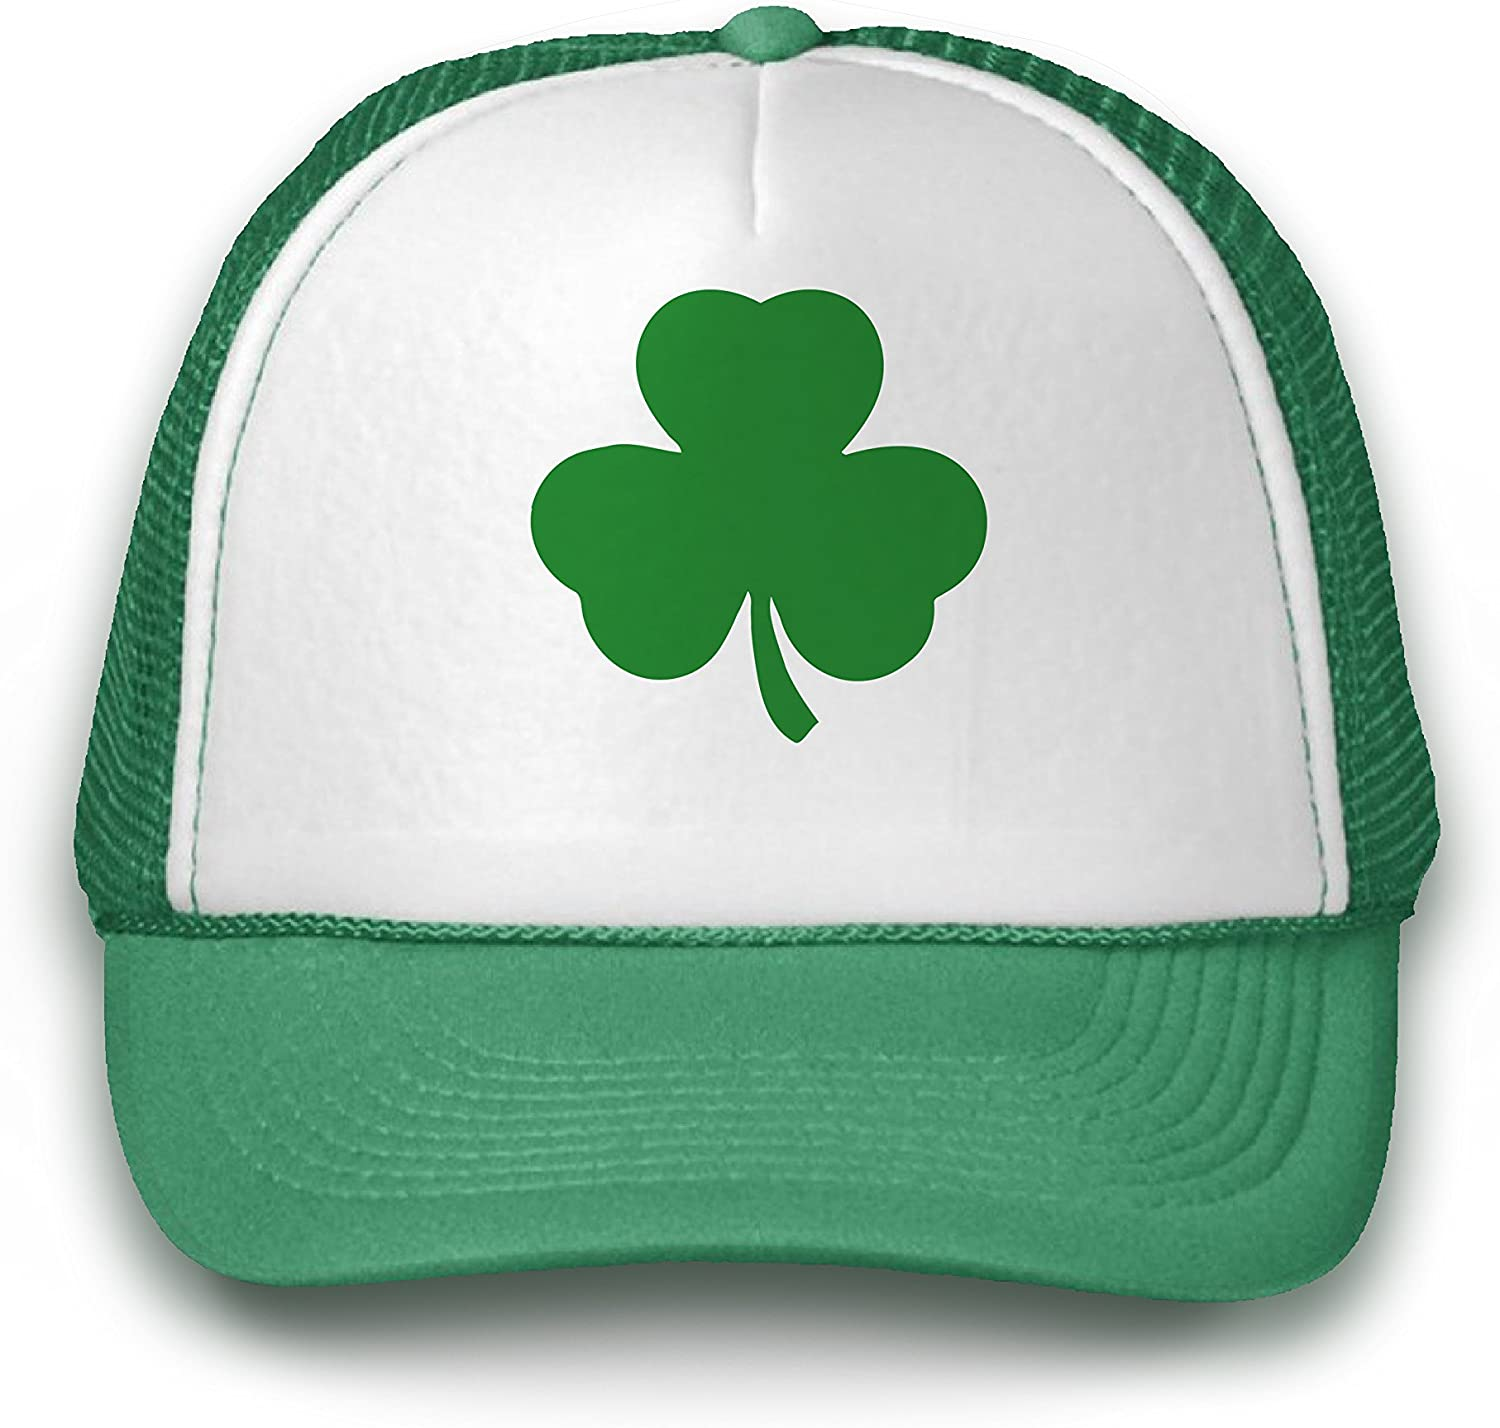 13cf32e5 Awkward Awkward Awkward Styles Lucky Irish Shamrock Trucker Hat Mash Caps  for St. Patrick's Day 051c73